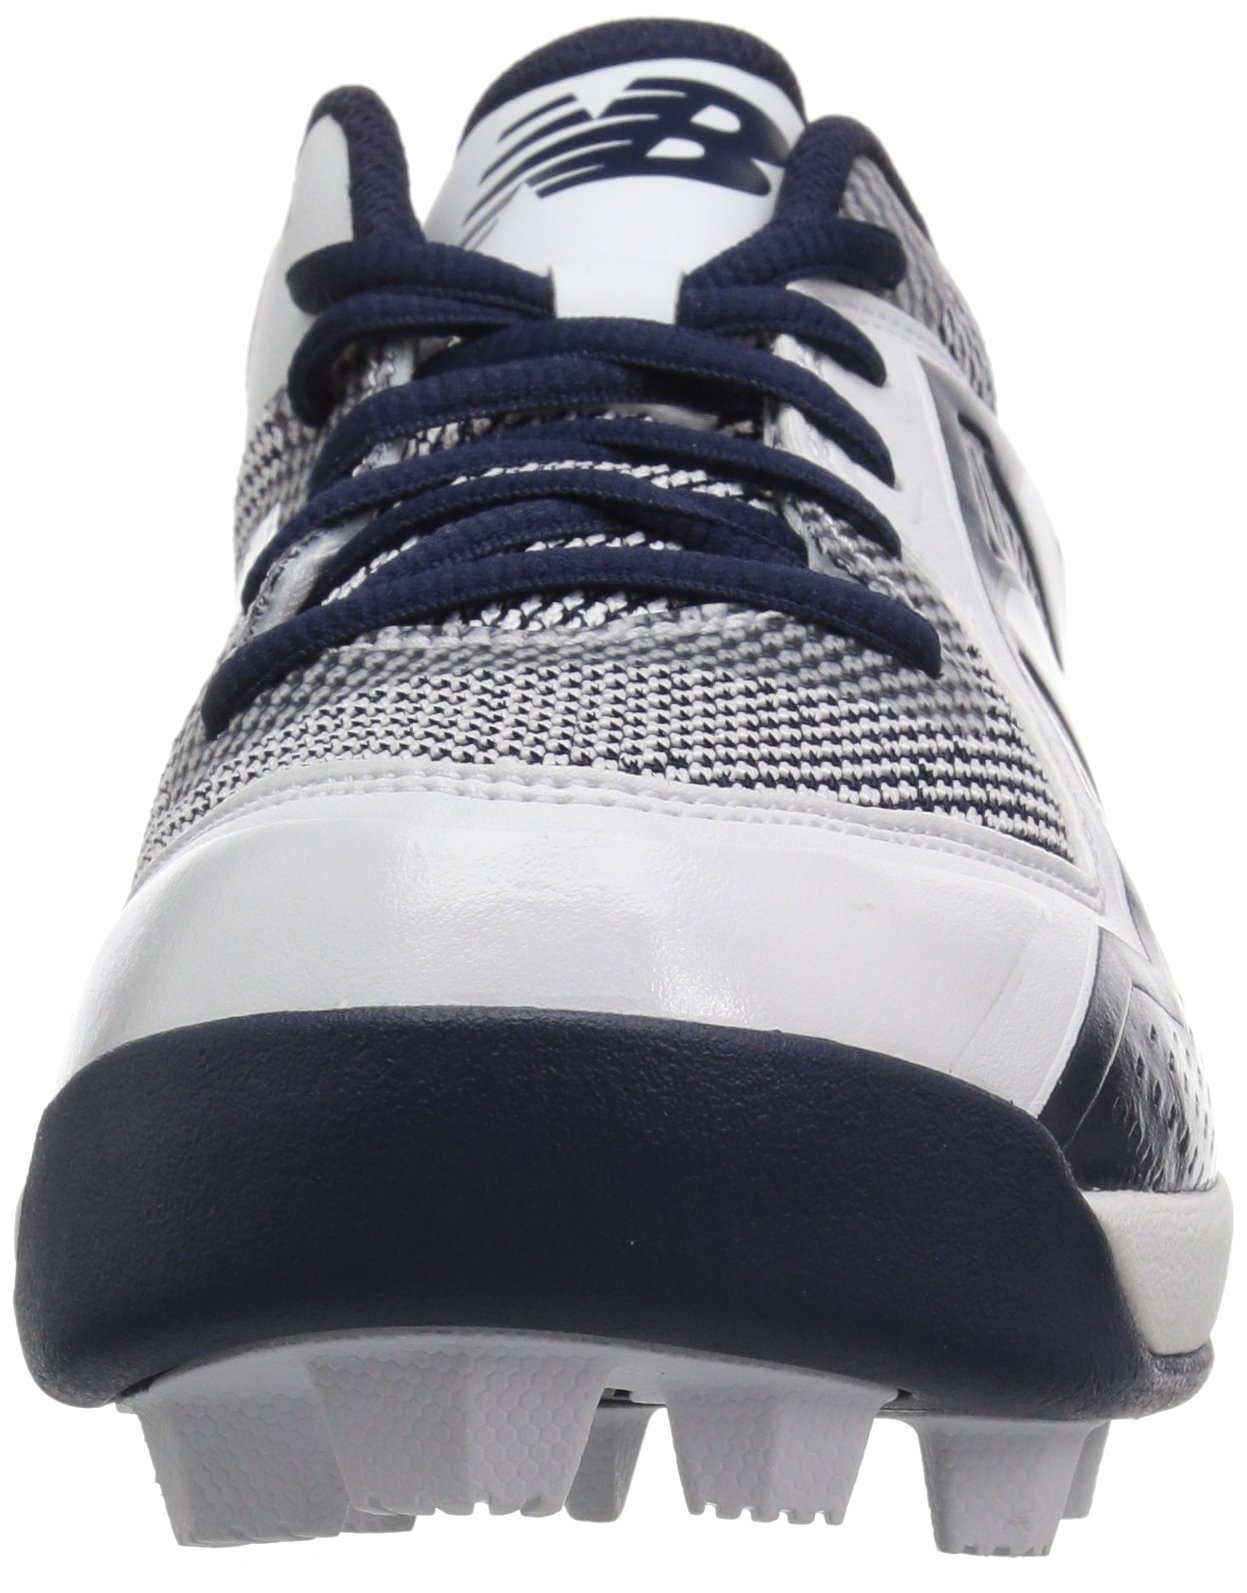 New Balance Boys' 4040v4, Navy/White, 1 W US Little Kid by New Balance (Image #4)